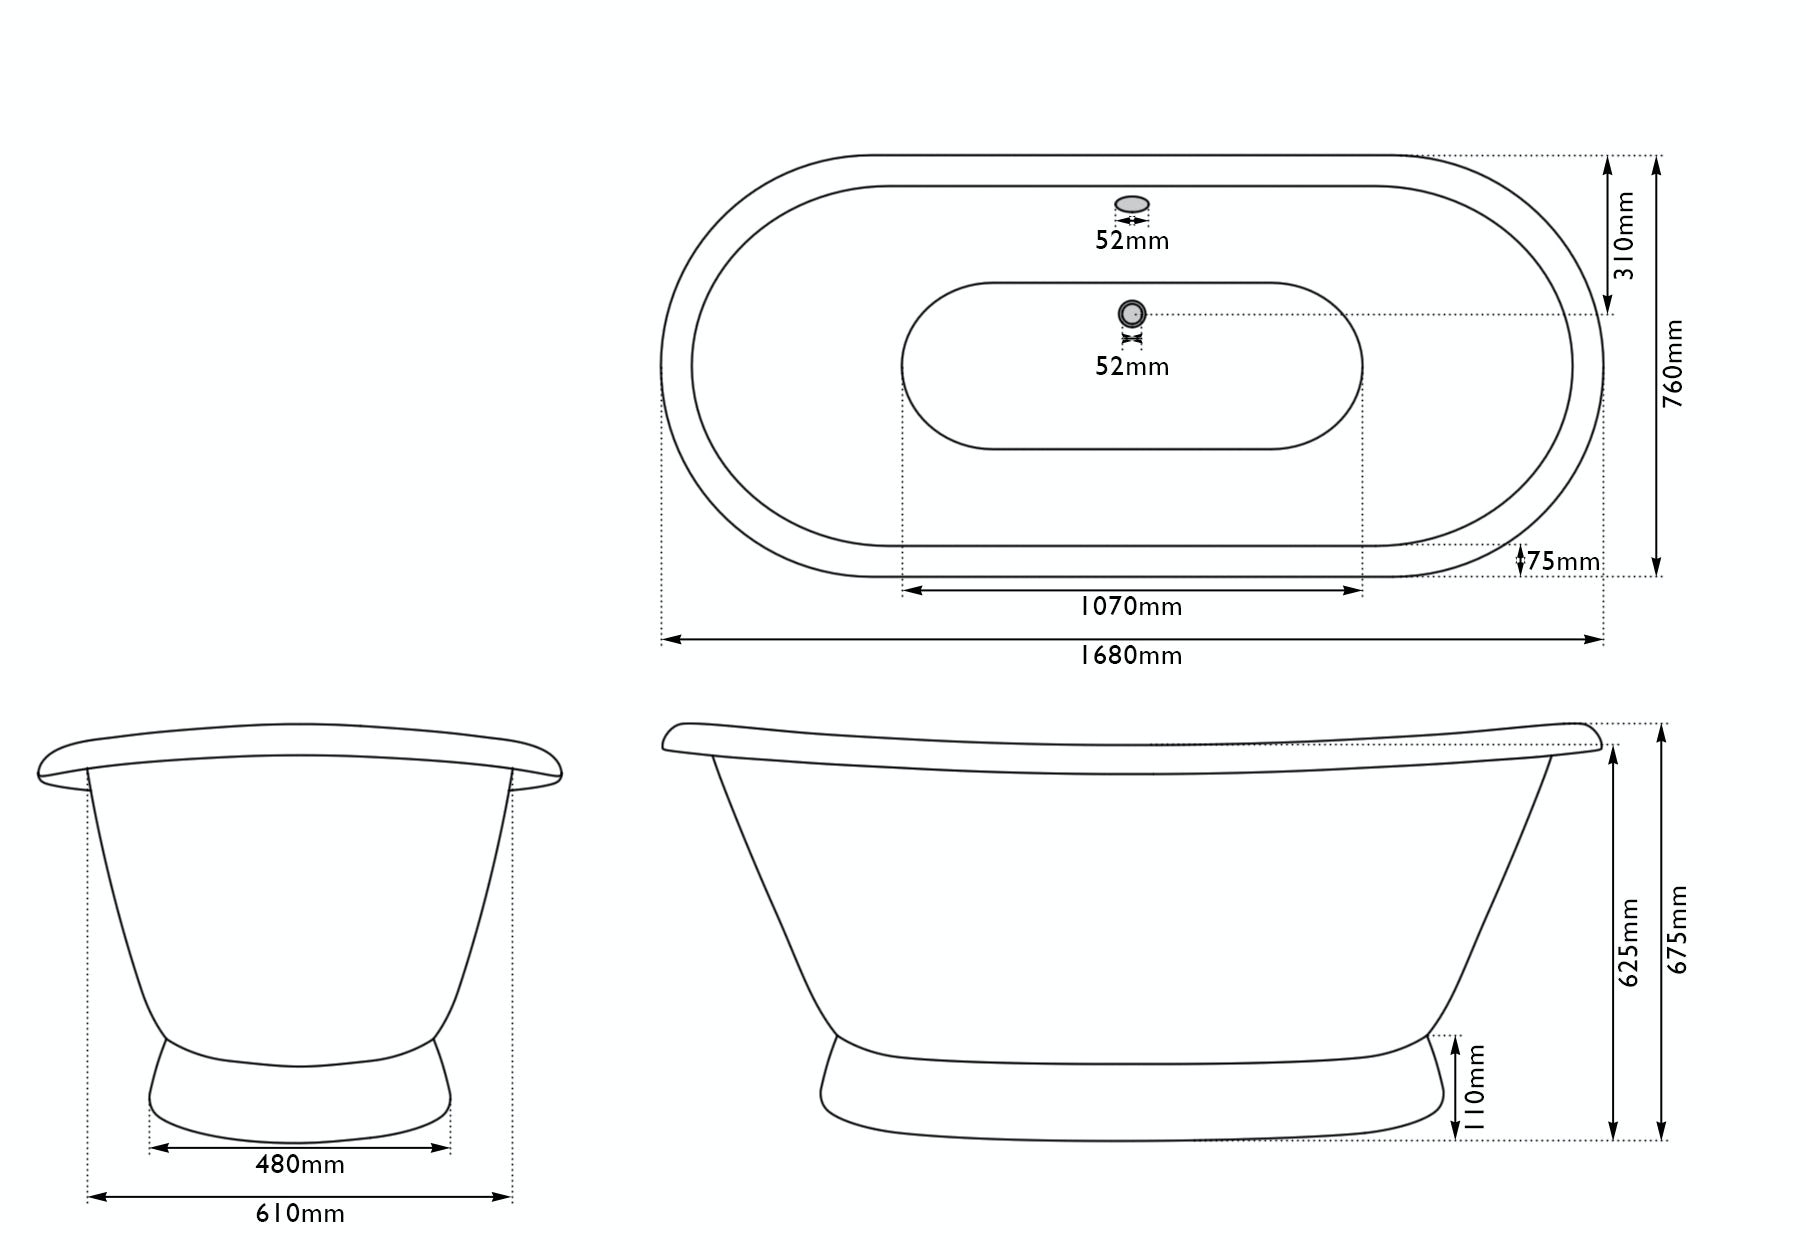 Dimensions for The Bath Co. Stirling keystone grey cast iron bath